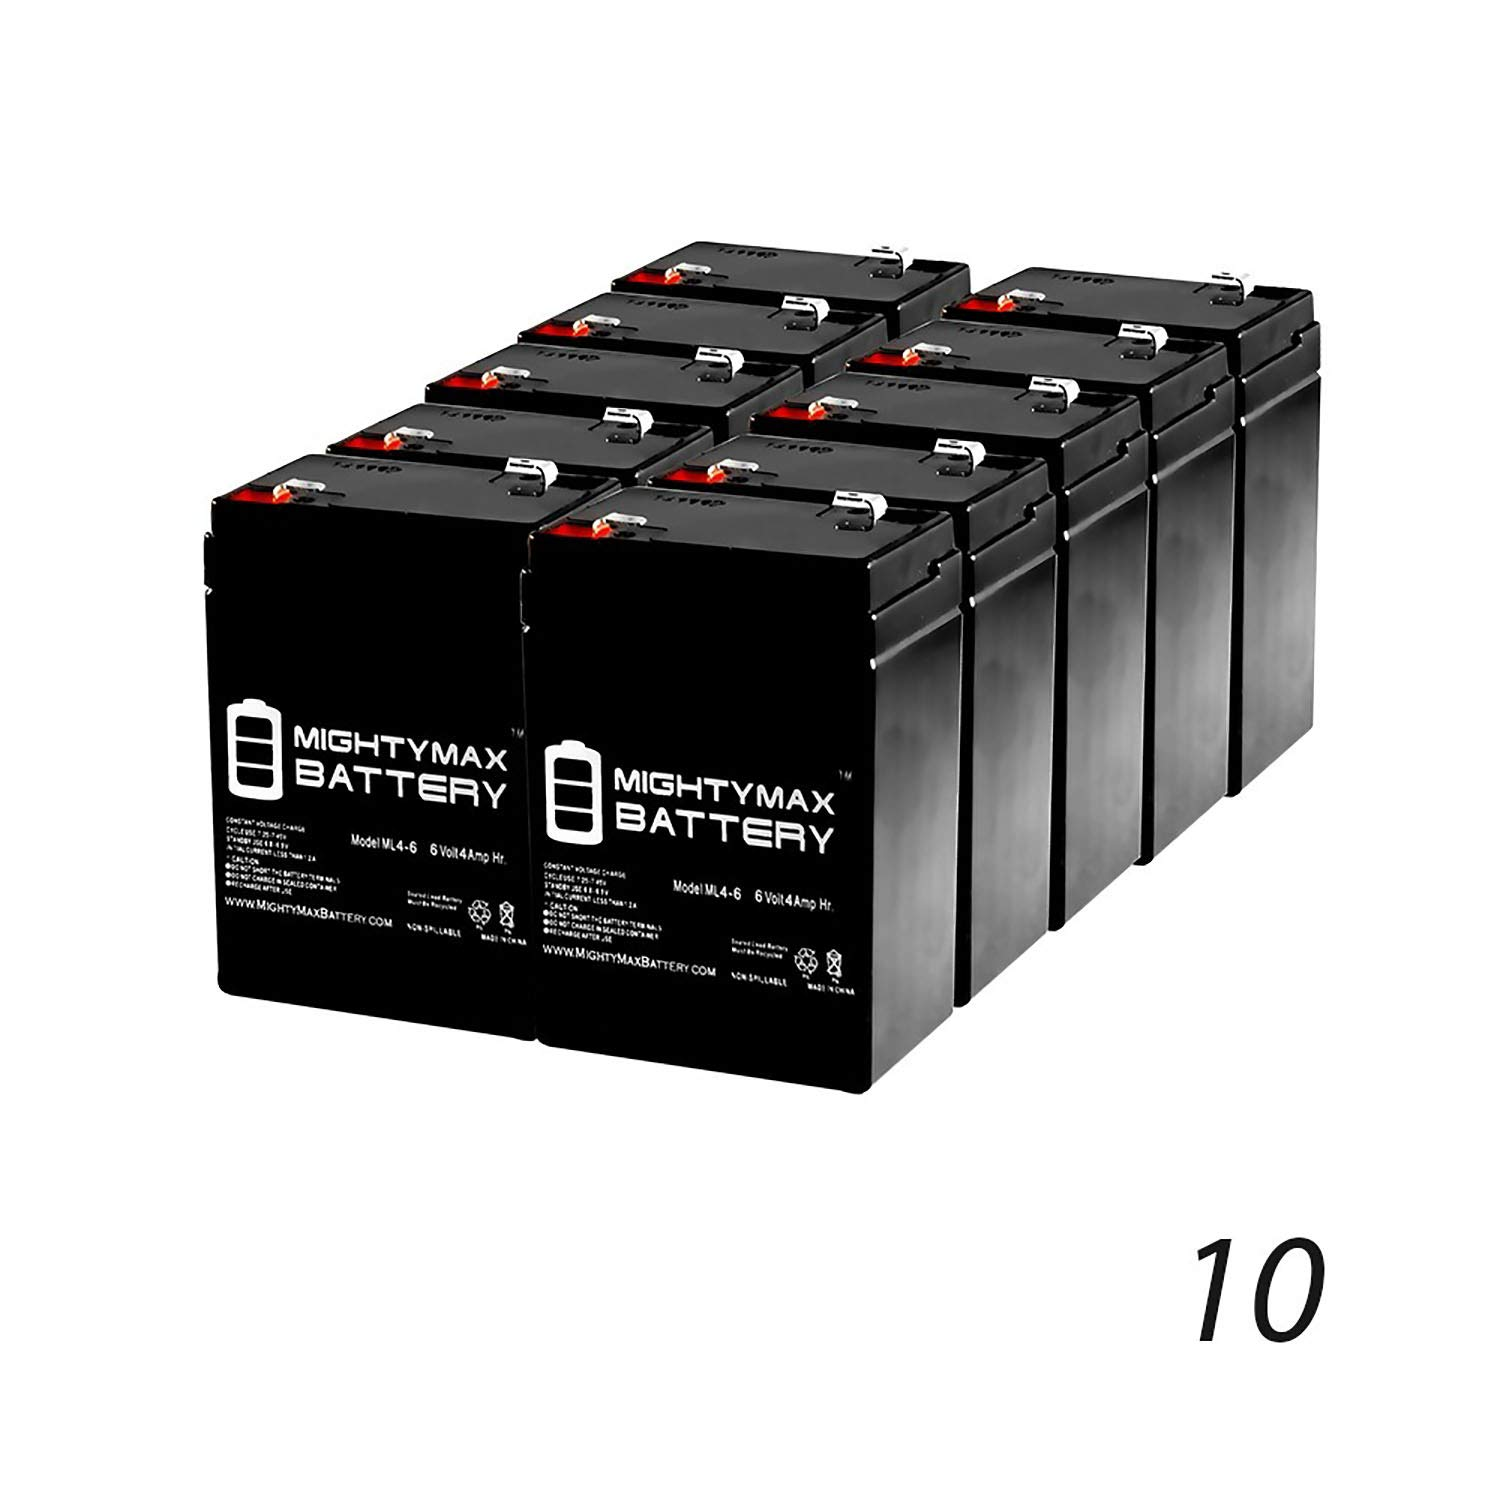 Mighty Max Battery 6V 4.5AH SLA Battery Replaces Power Patrol SLA0905, SLA090-10 Pack Brand Product by Mighty Max Battery (Image #1)